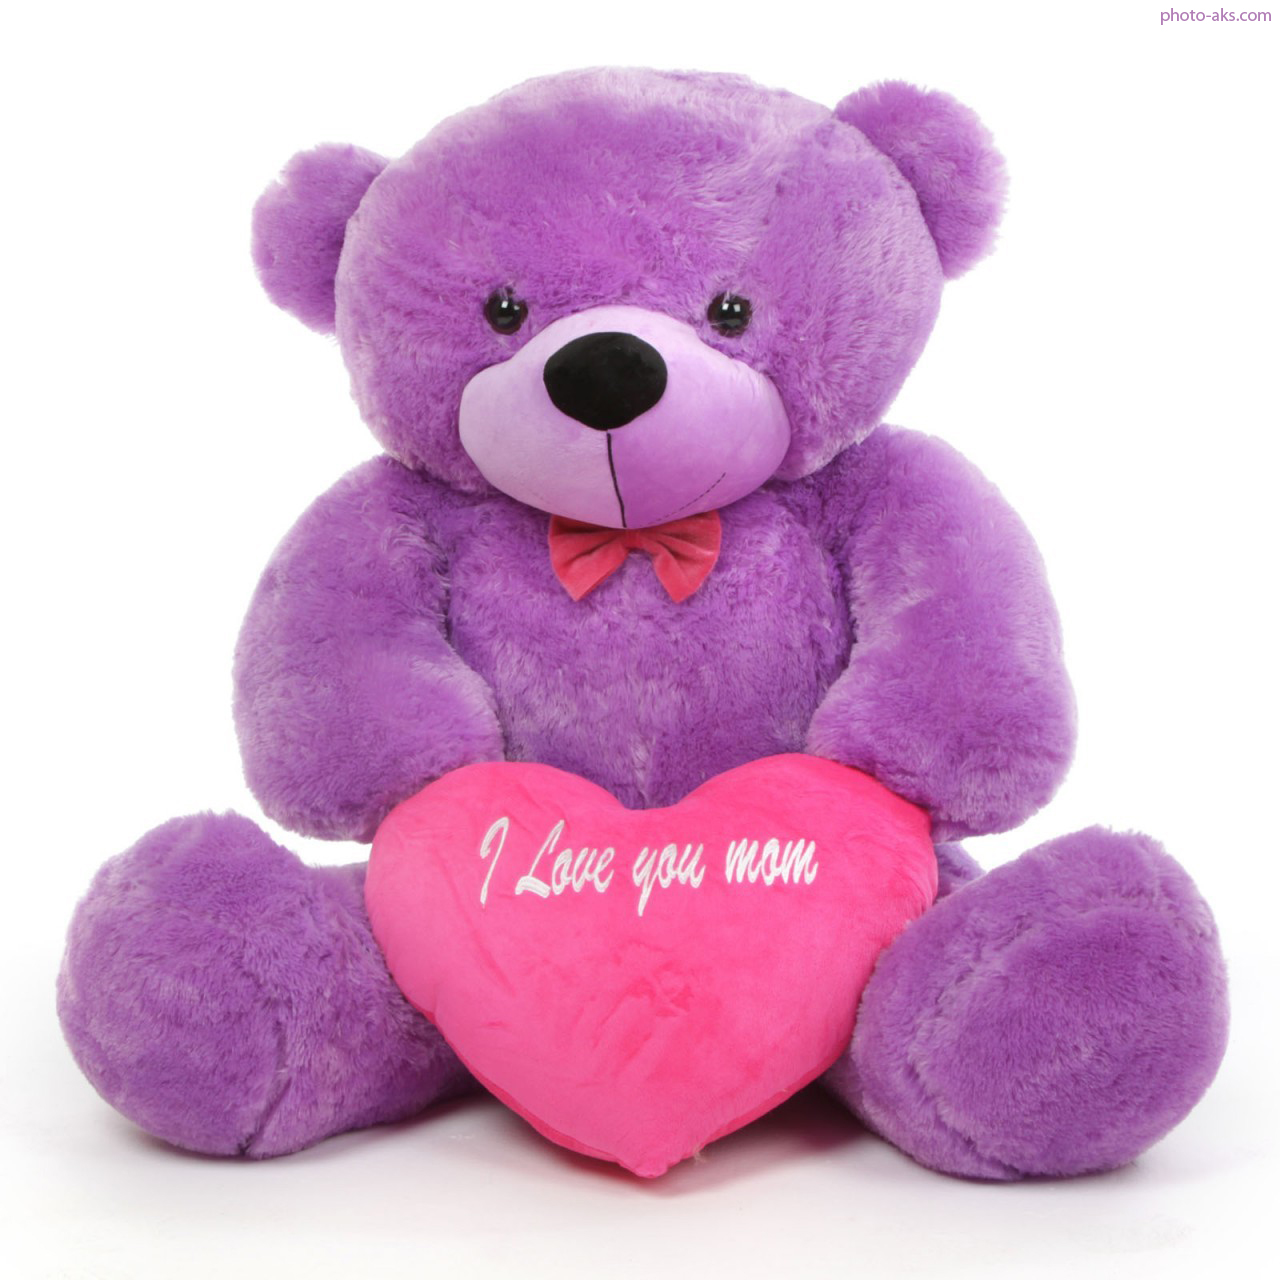 Purple teddy bear - Tedy shop ...